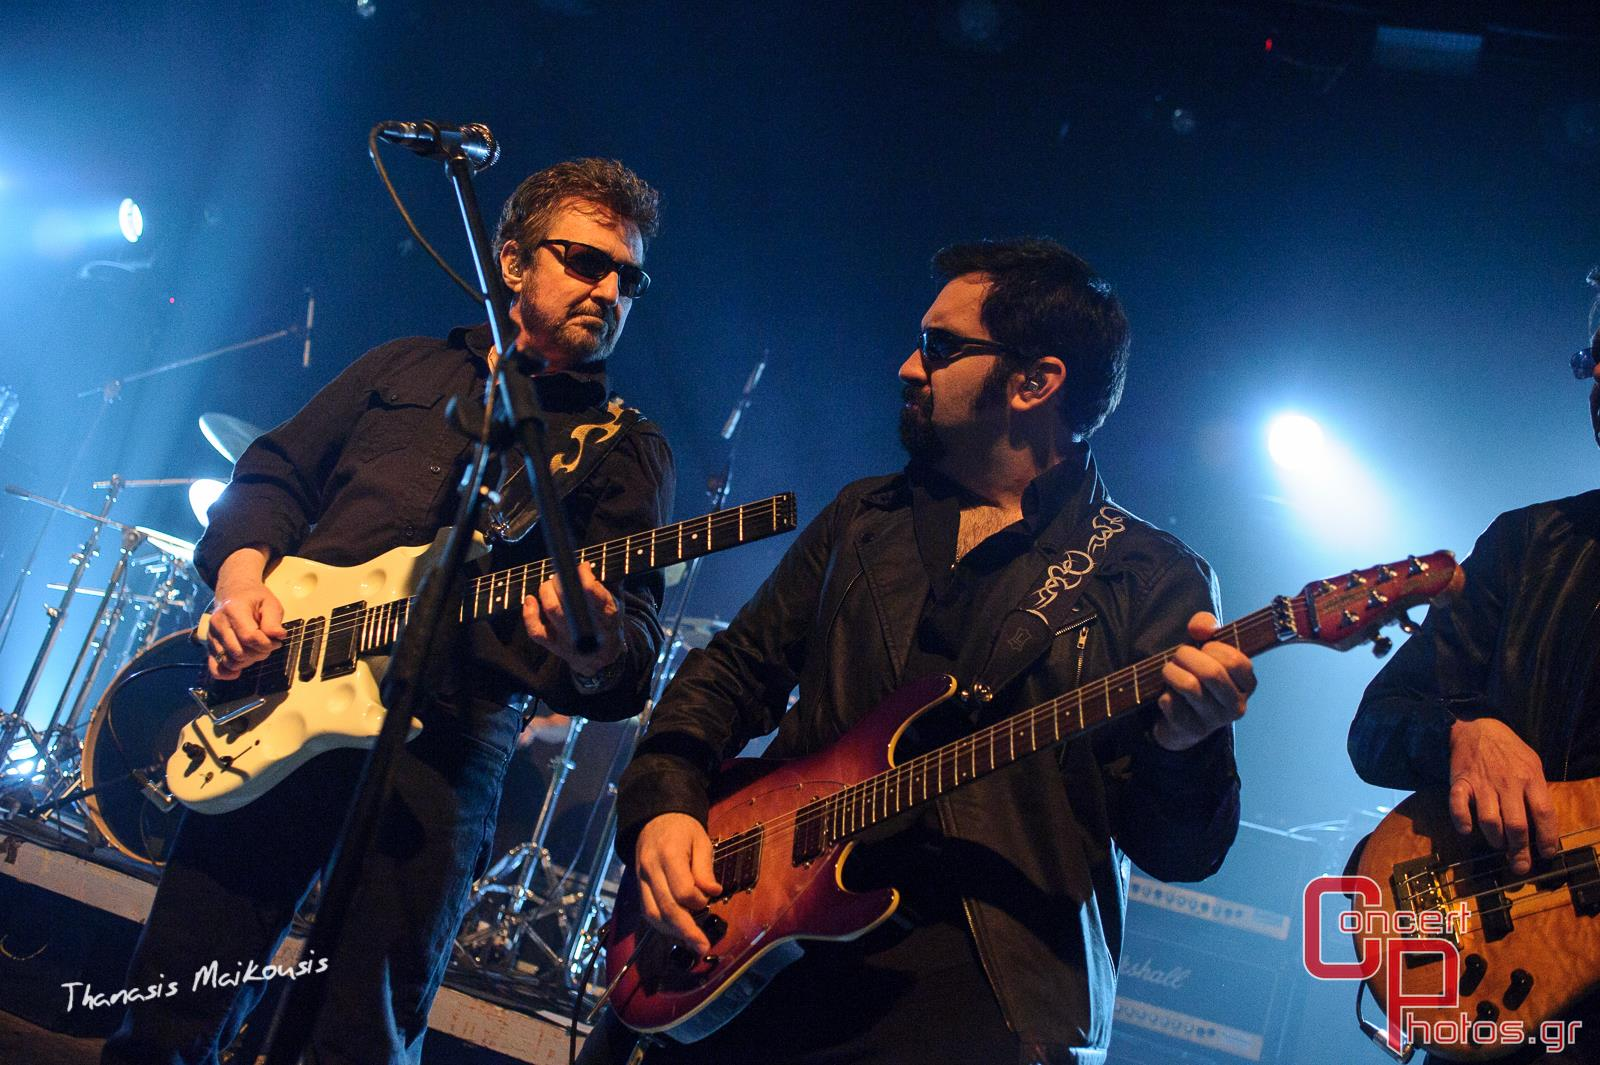 Blue Oyster Cult & Big Nose Attack-Blue Oyster Cult - Big Nose Attack photographer:  - ConcertPhotos-3129